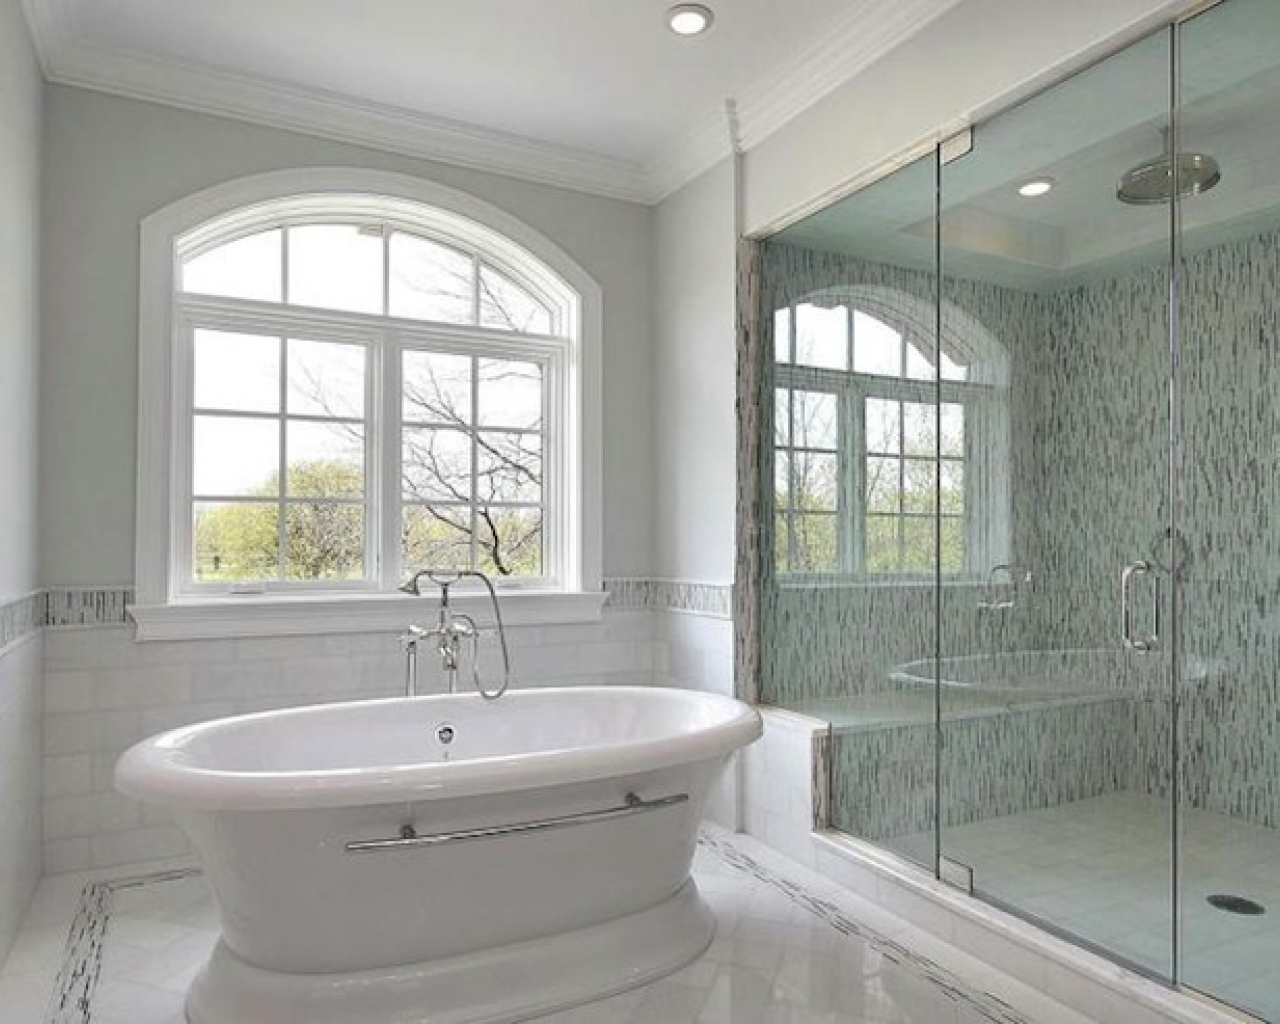 Bathroom Glass Tile Ideas Home Design Ideas And Pictures - Glass accent tiles for bathroom